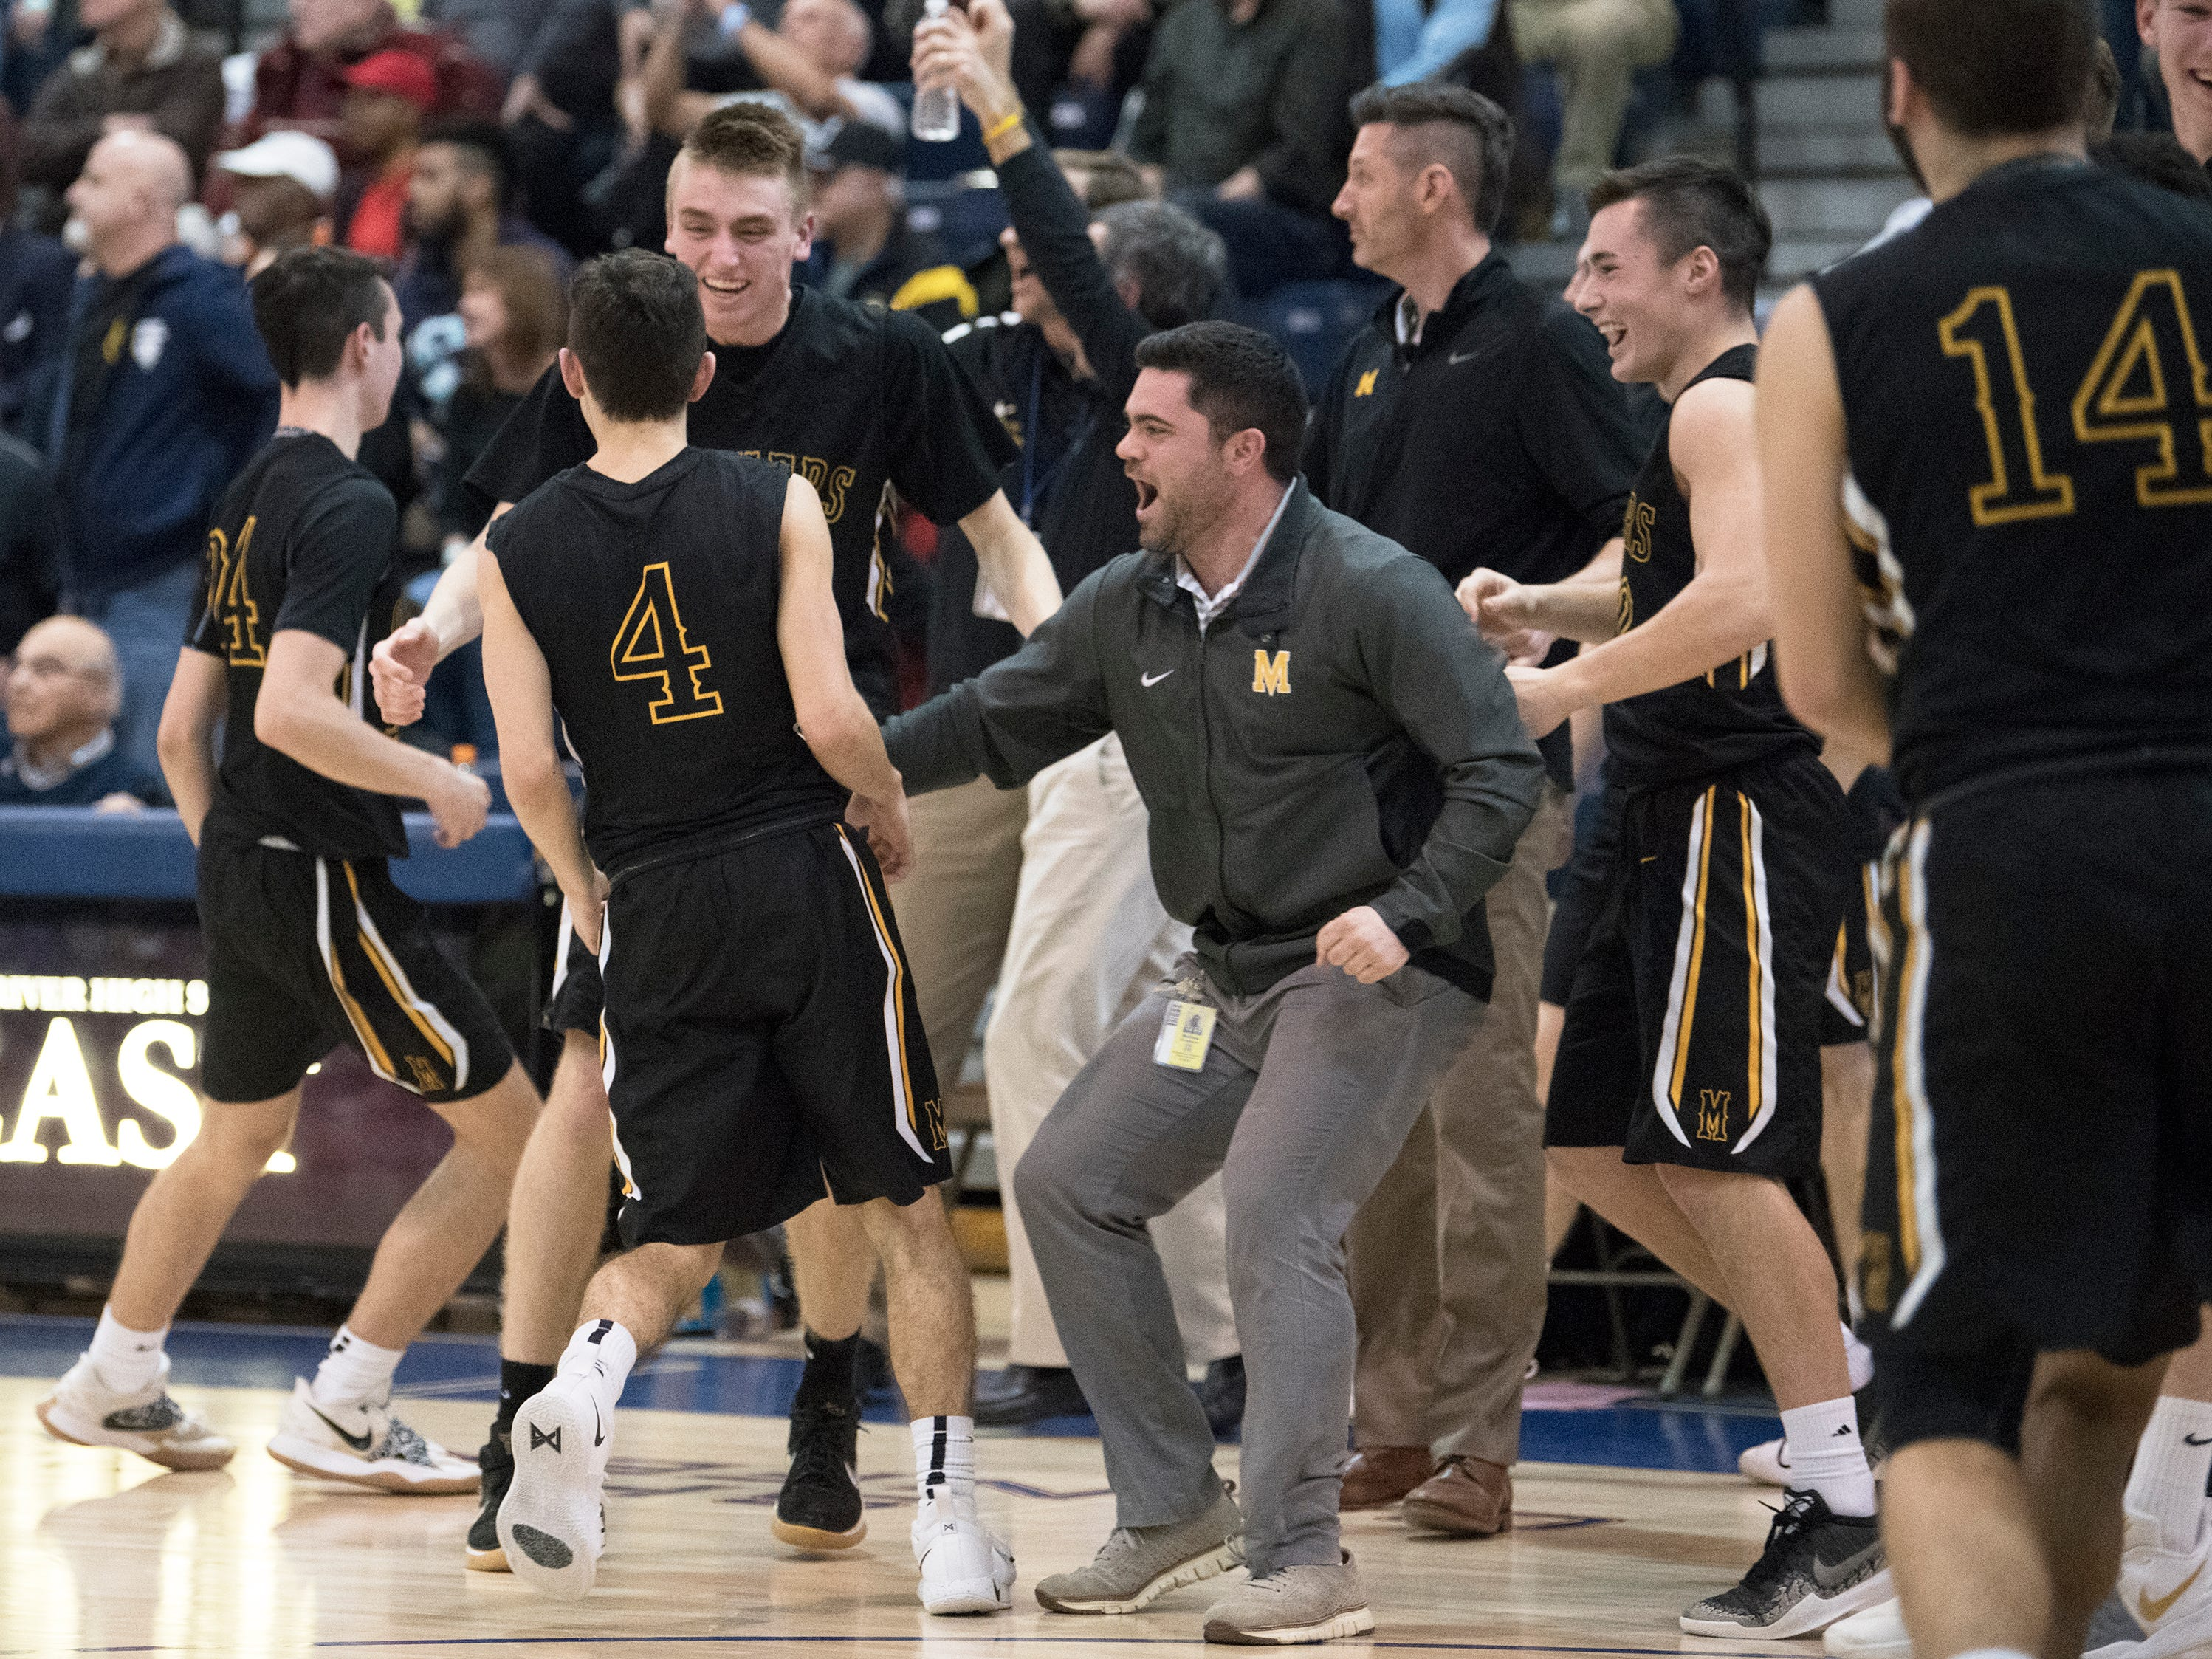 Members of the Moorestown High School boys basketball team celebrate with their coaches after Moorestown defeated Haddonfield 60-59 quarter in the boys basketball Tournament of Champions quarterfinal game played at Toms River North High School on Wednesday, March 13, 2019.